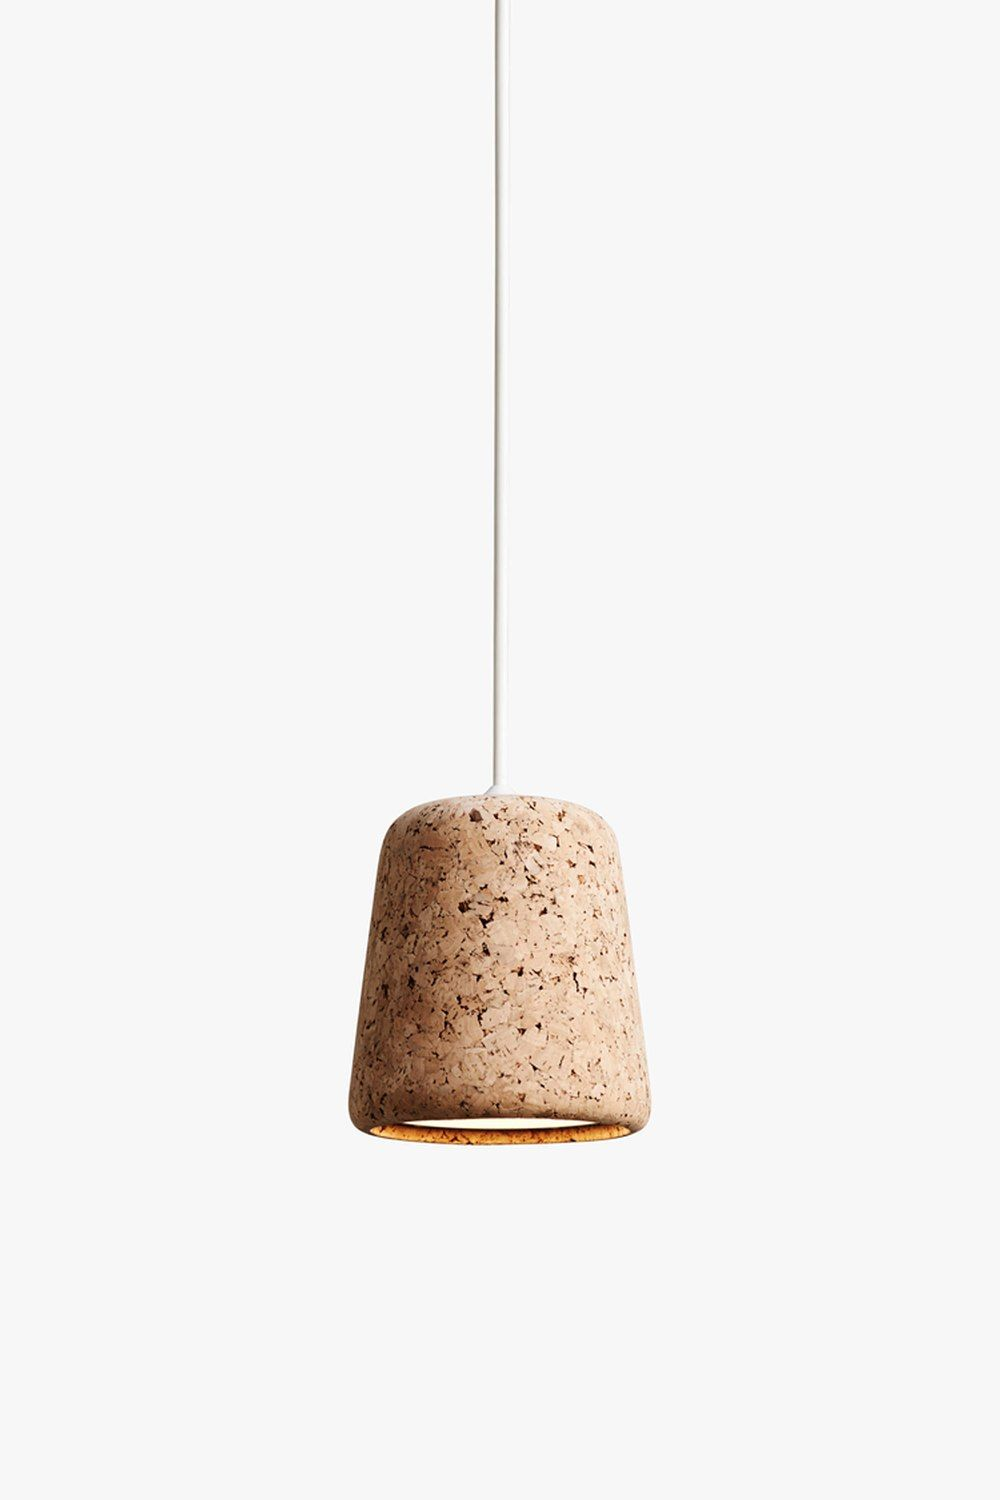 The Material Pendant lamp highlights the power of simplicity in form.   Through this simplicity, it can become a standout piece within a room, or   be used to complement those around it. From the warmth of oak and cork, to   the roughness of concrete and marble, the richness of terracotta, and the